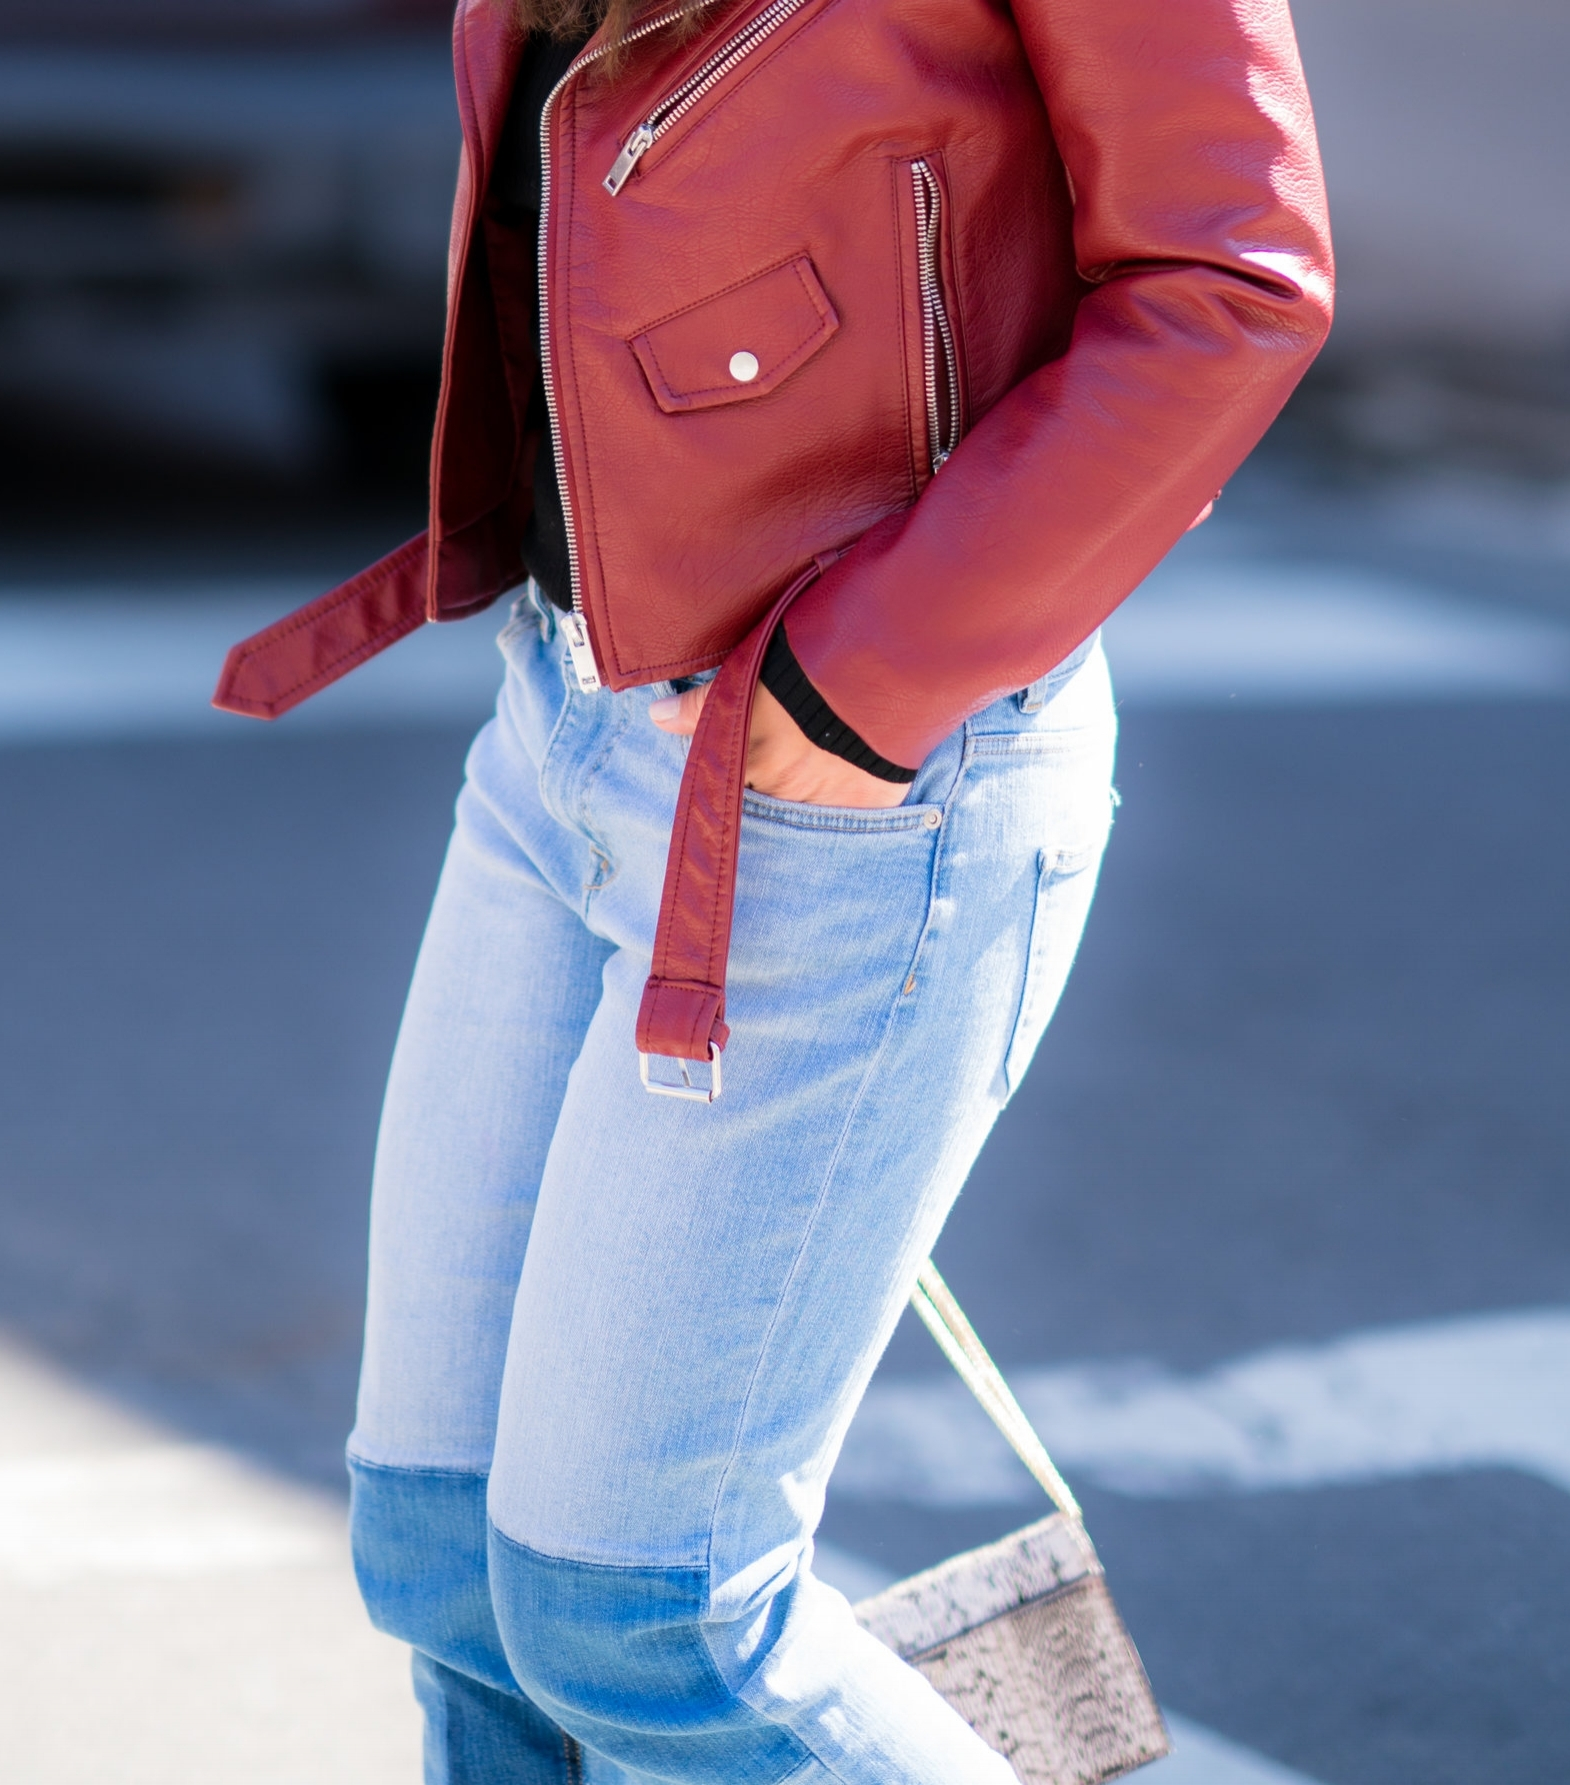 DETAILS RED LEATHER JACKET AND PATCHWORK JEANS